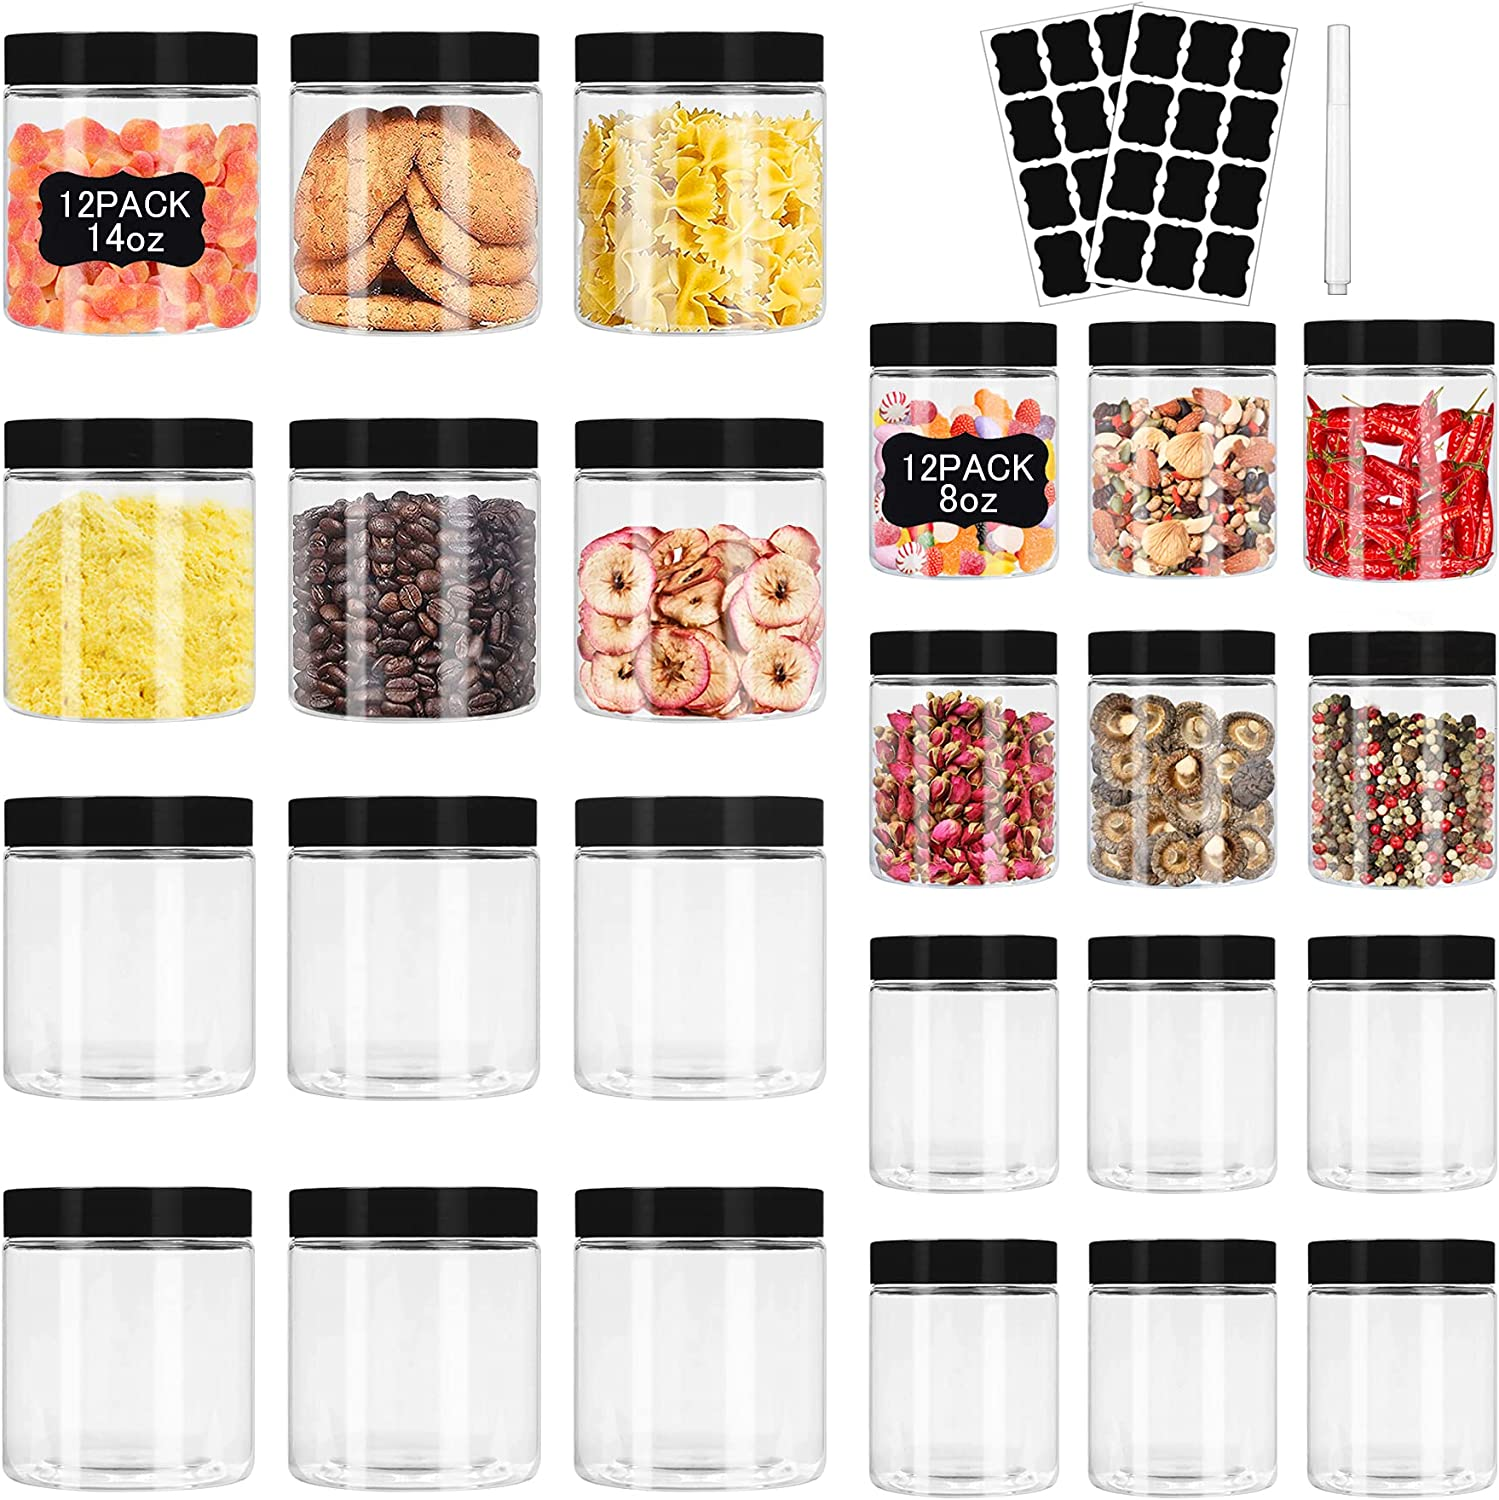 Plastic Jars with Lids 8 oz(12Pcs) & 14 oz(12Pcs) Clear Plastic Slime Storage Jars Containers with Airtight Leak Proof Black Plastic Screw On Lids Cylinder Clear Round Jars Easy Clean Food Grade Durable PET Material